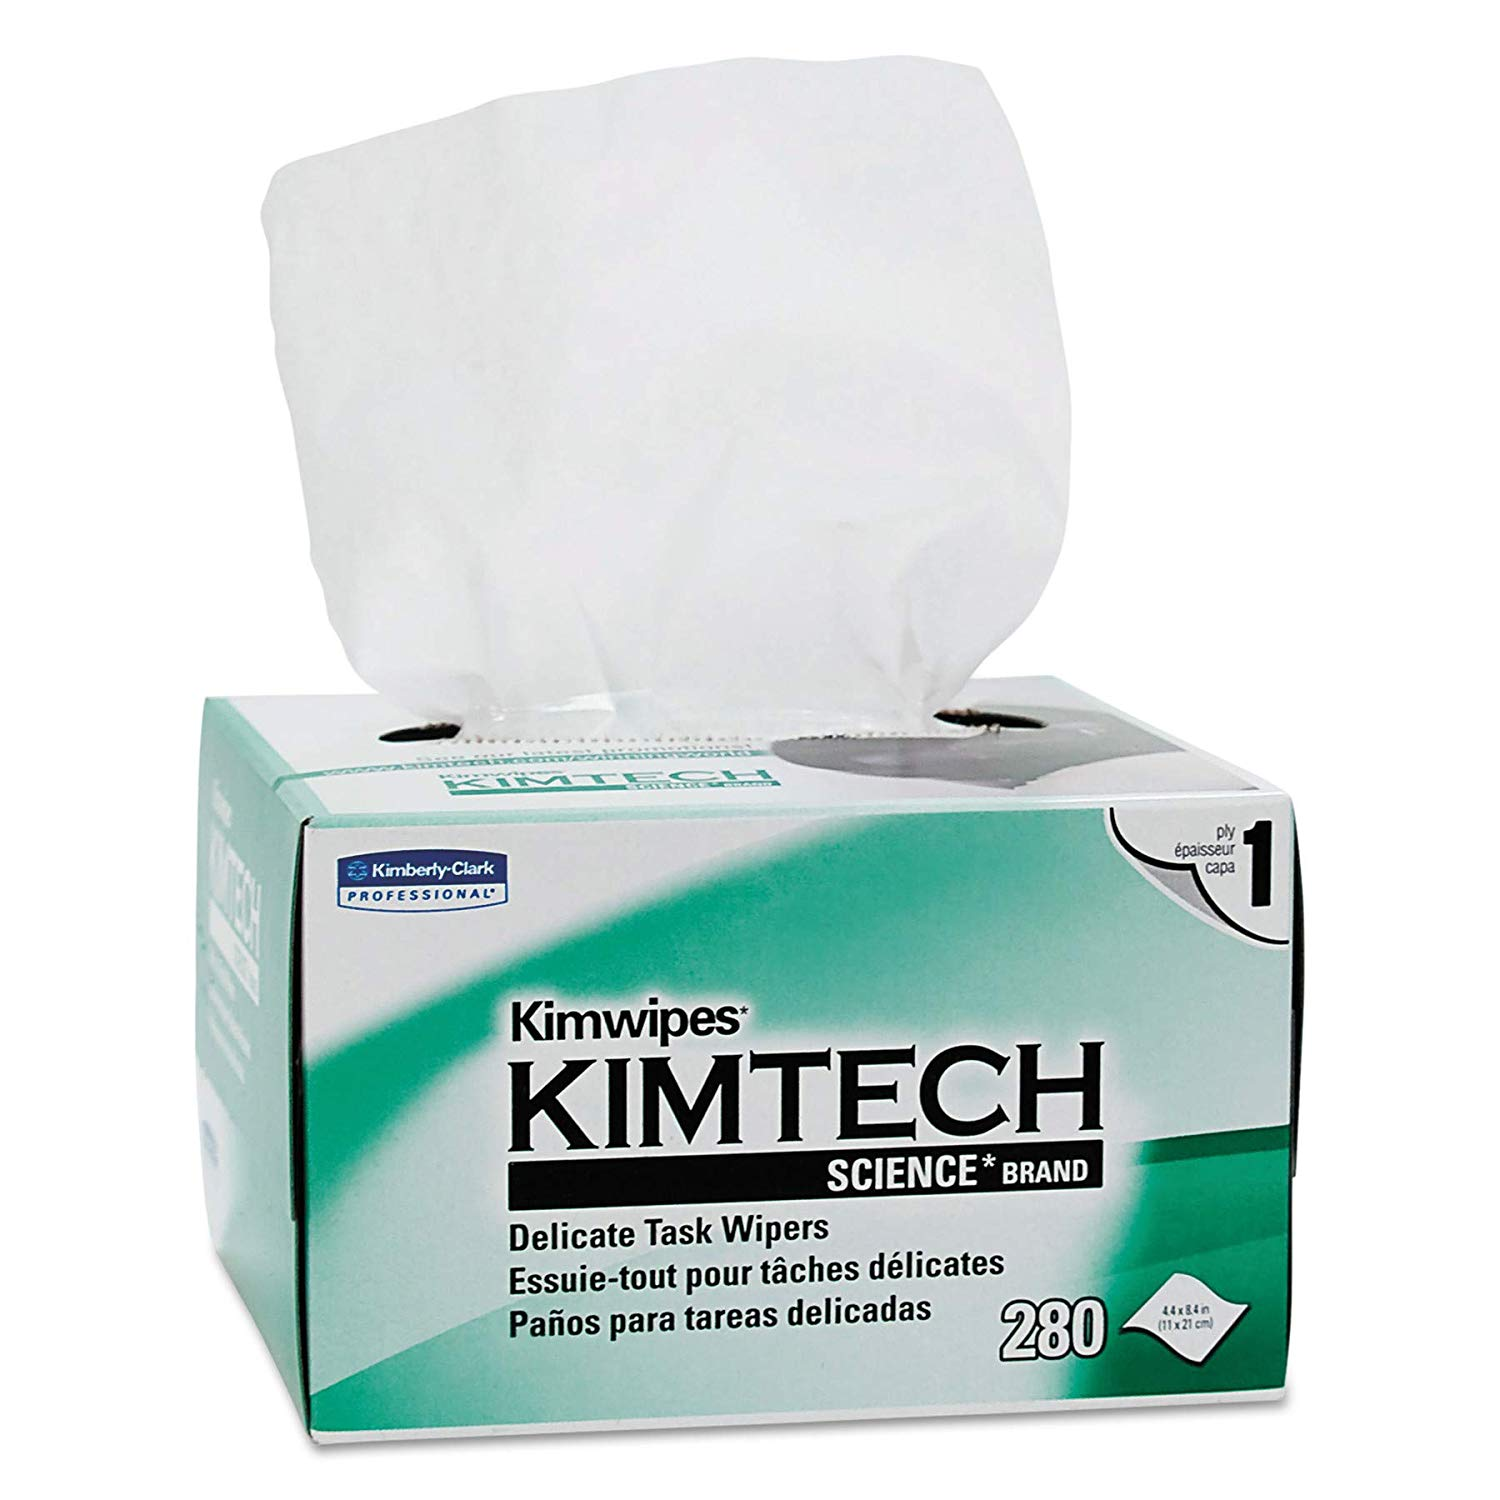 kimtech wipes